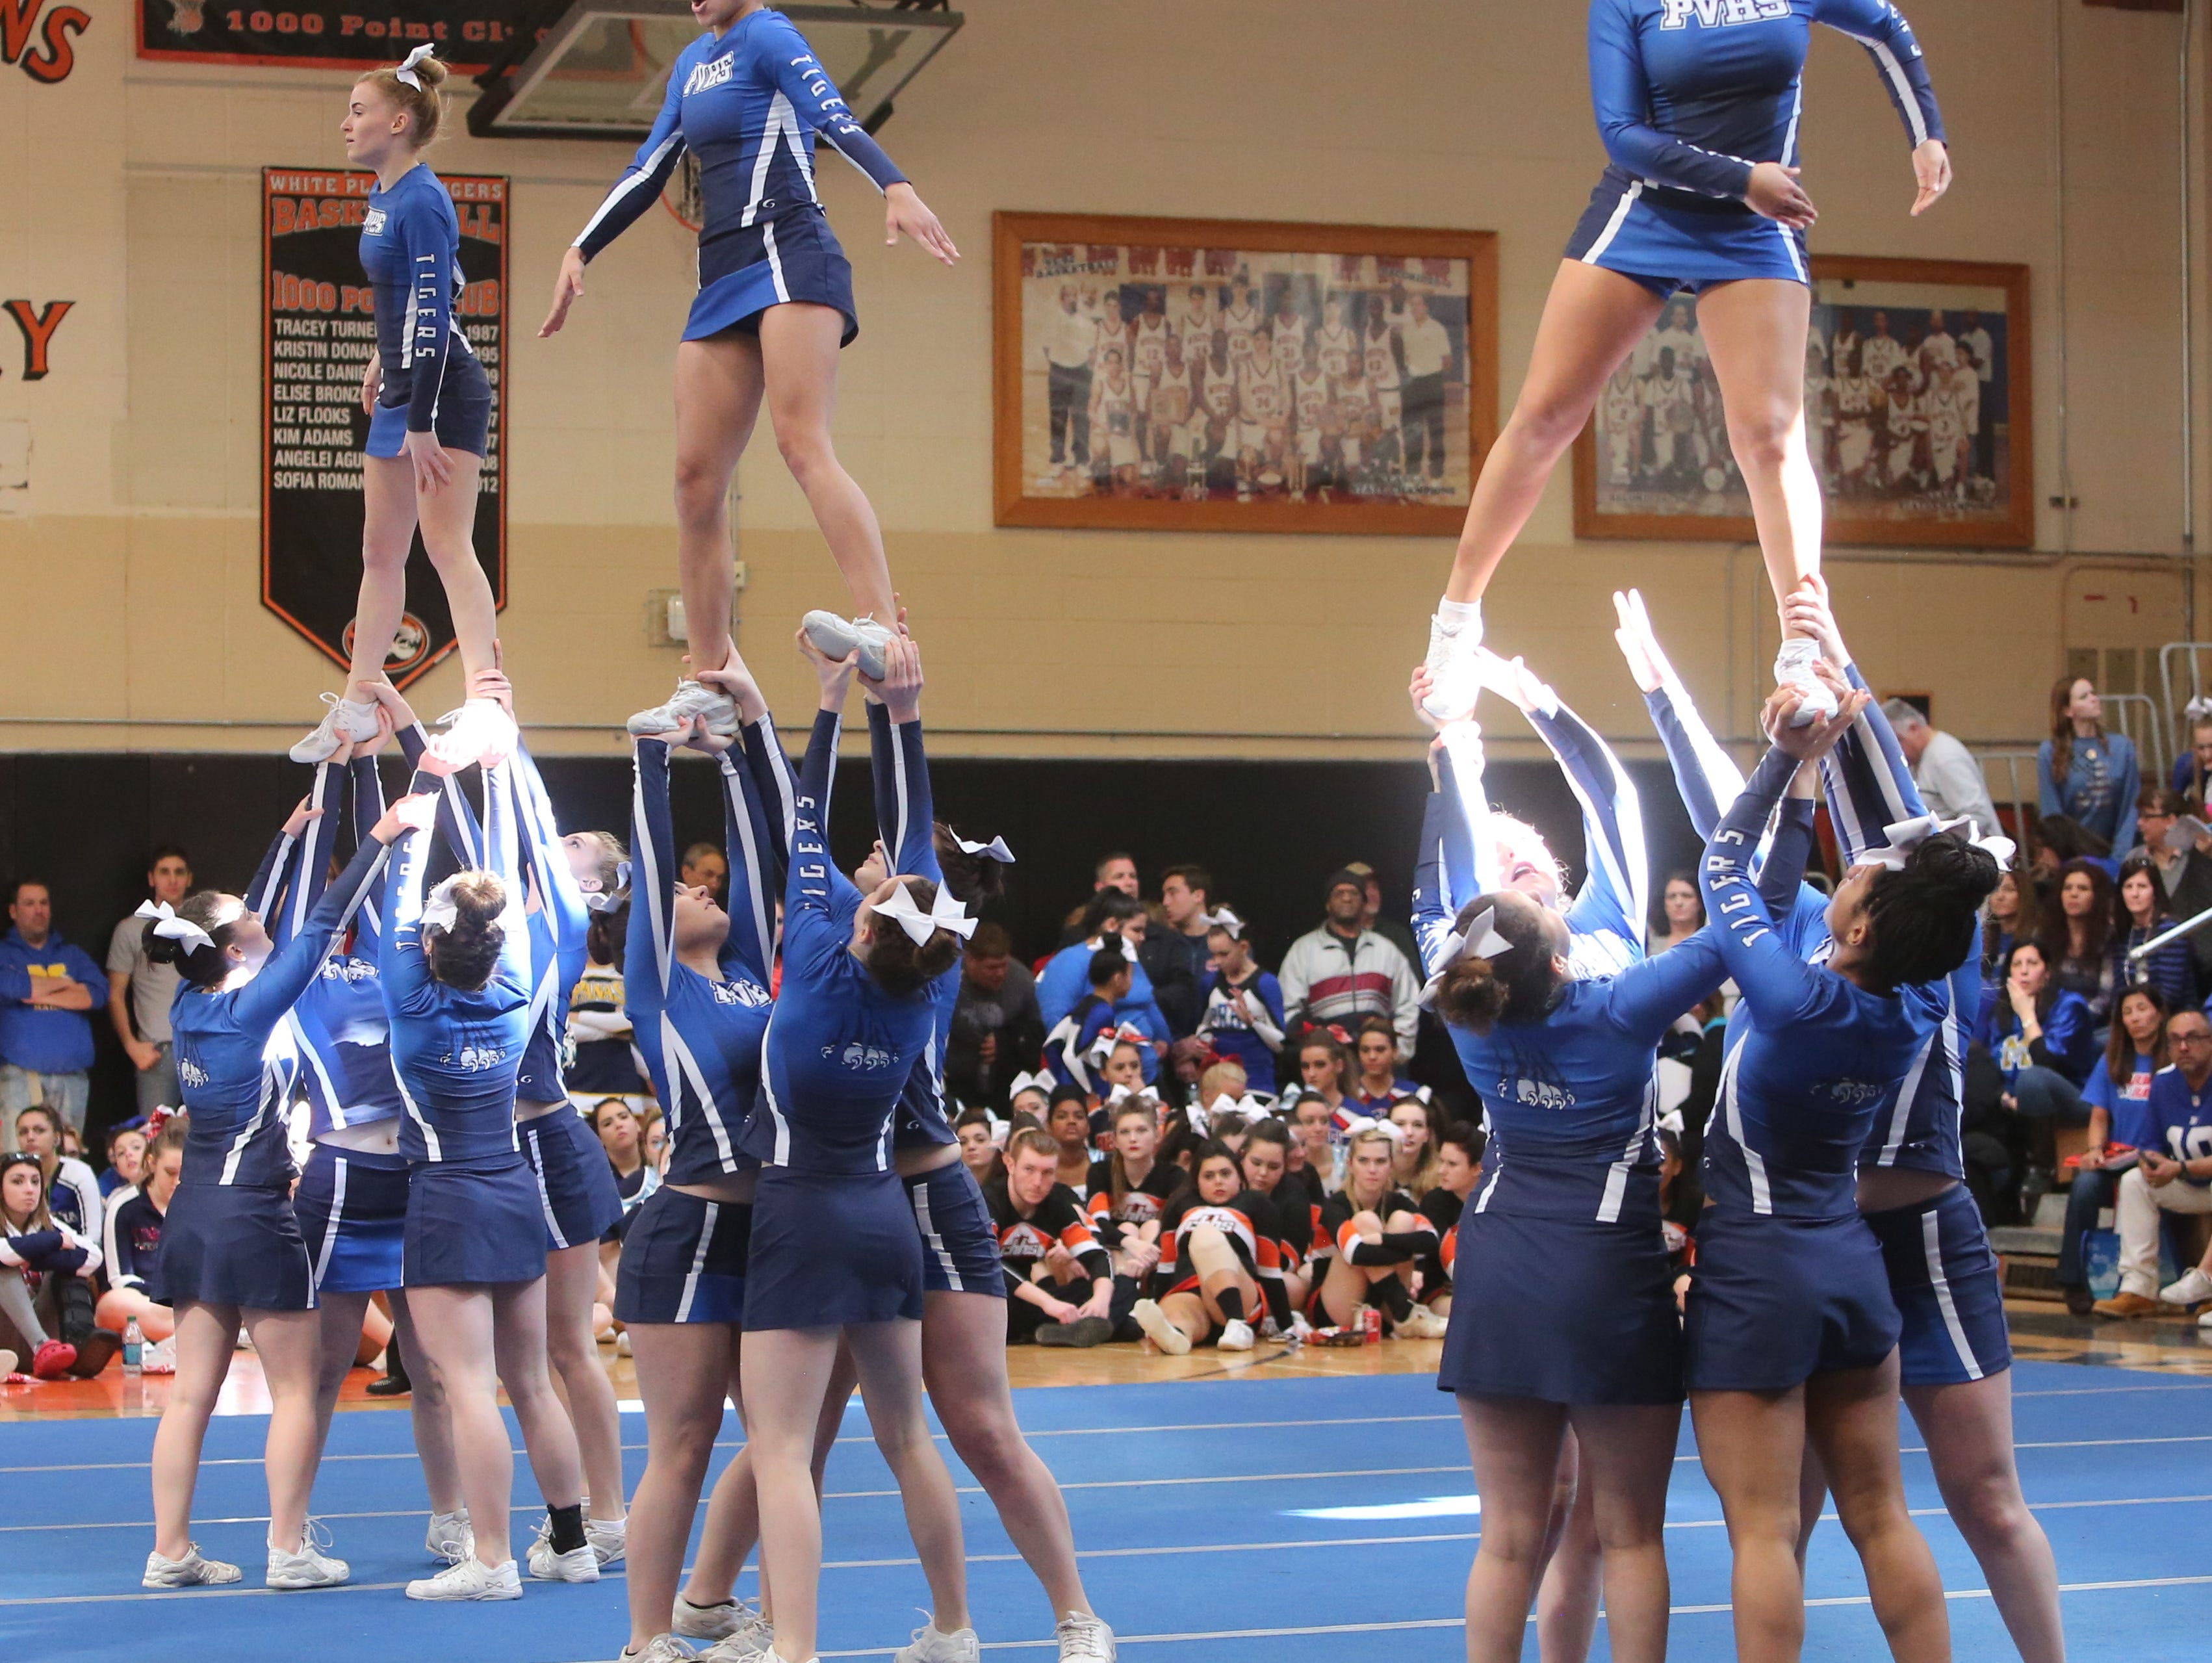 Putnam Valley High School cheerleaders perform during the Section One Cheerleading Finals 2016 at White Plains High School, Feb. 27, 2016.